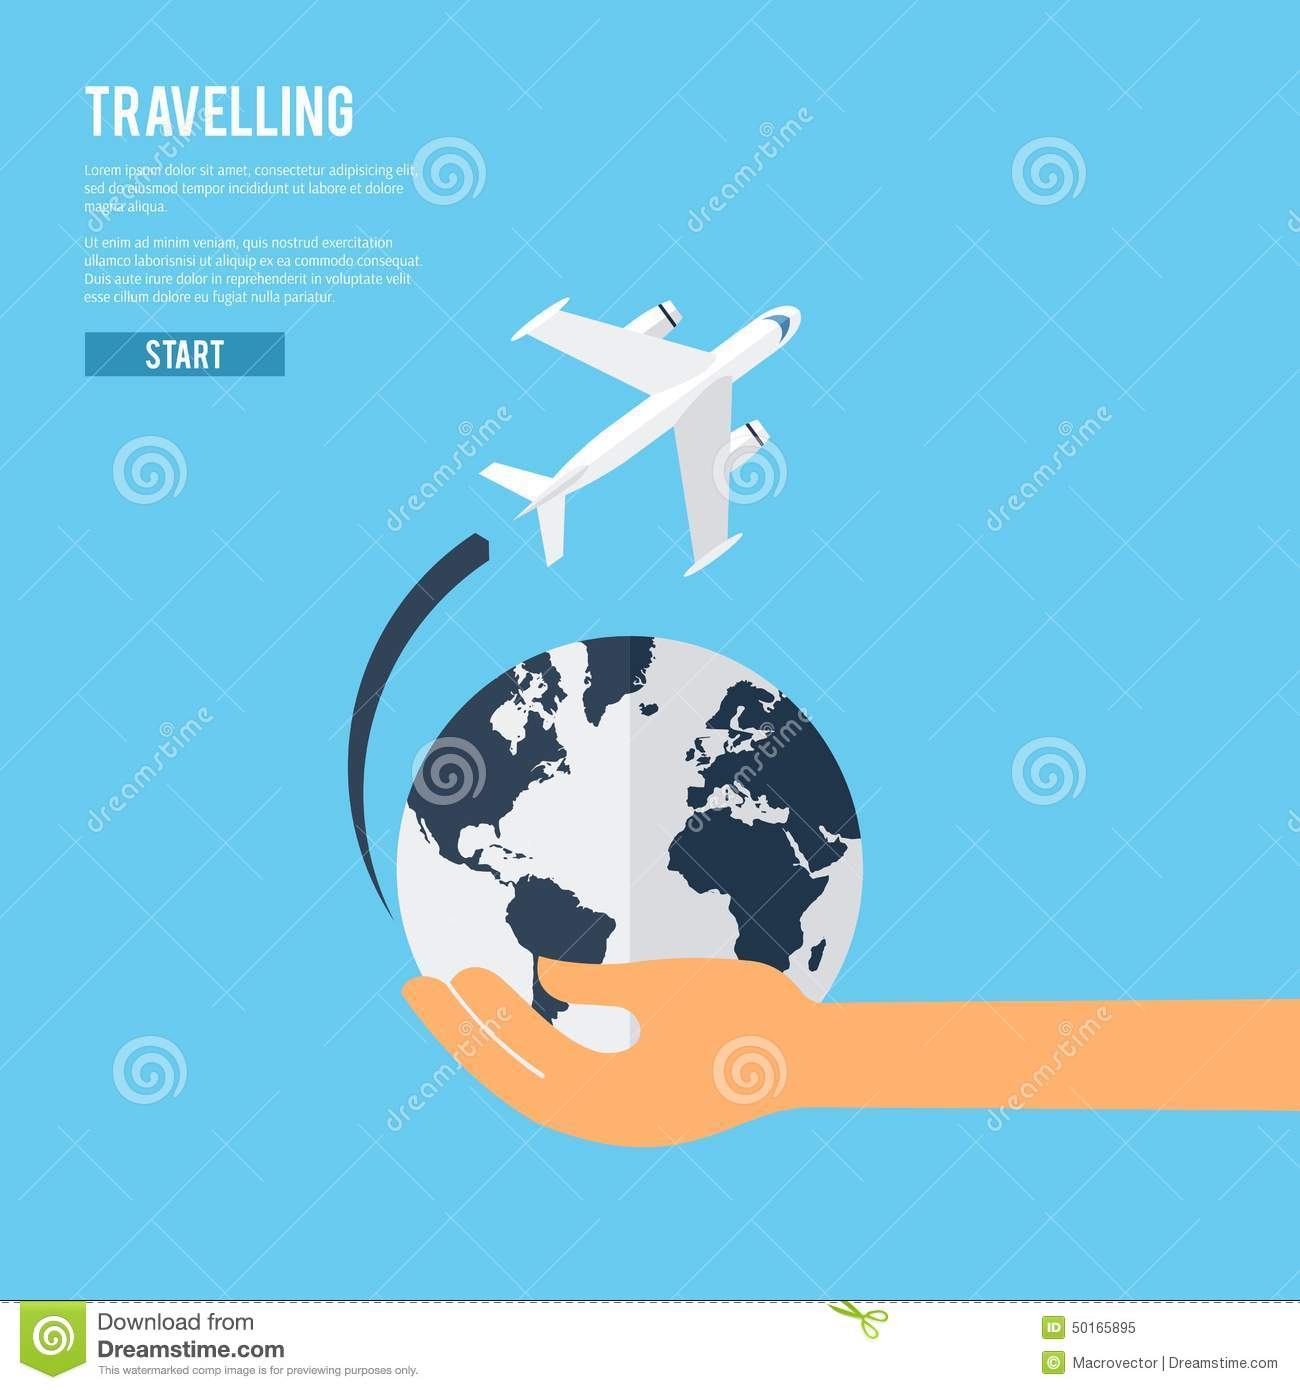 job search business cards job interview preparation flat banner world travel aircraft jet flying around the earth globe icon